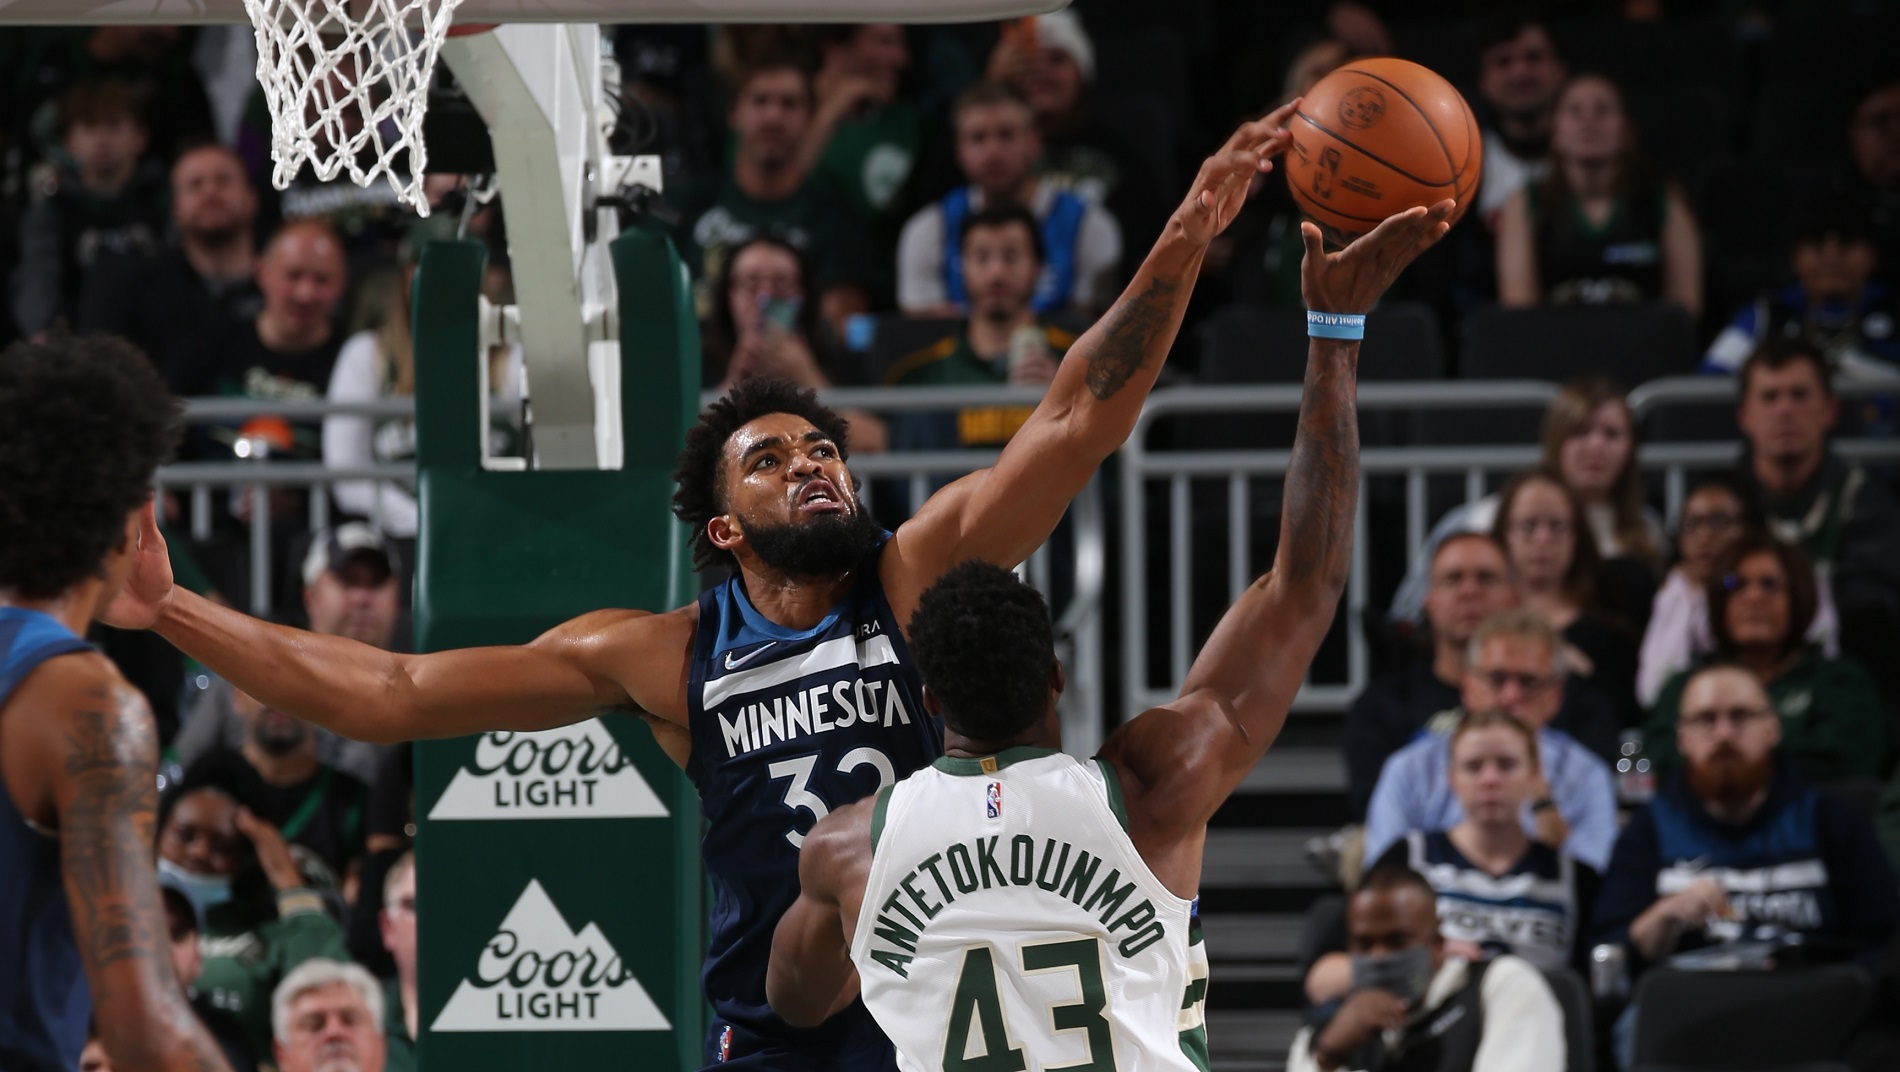 Star trio leads Wolves to upset of defending champs